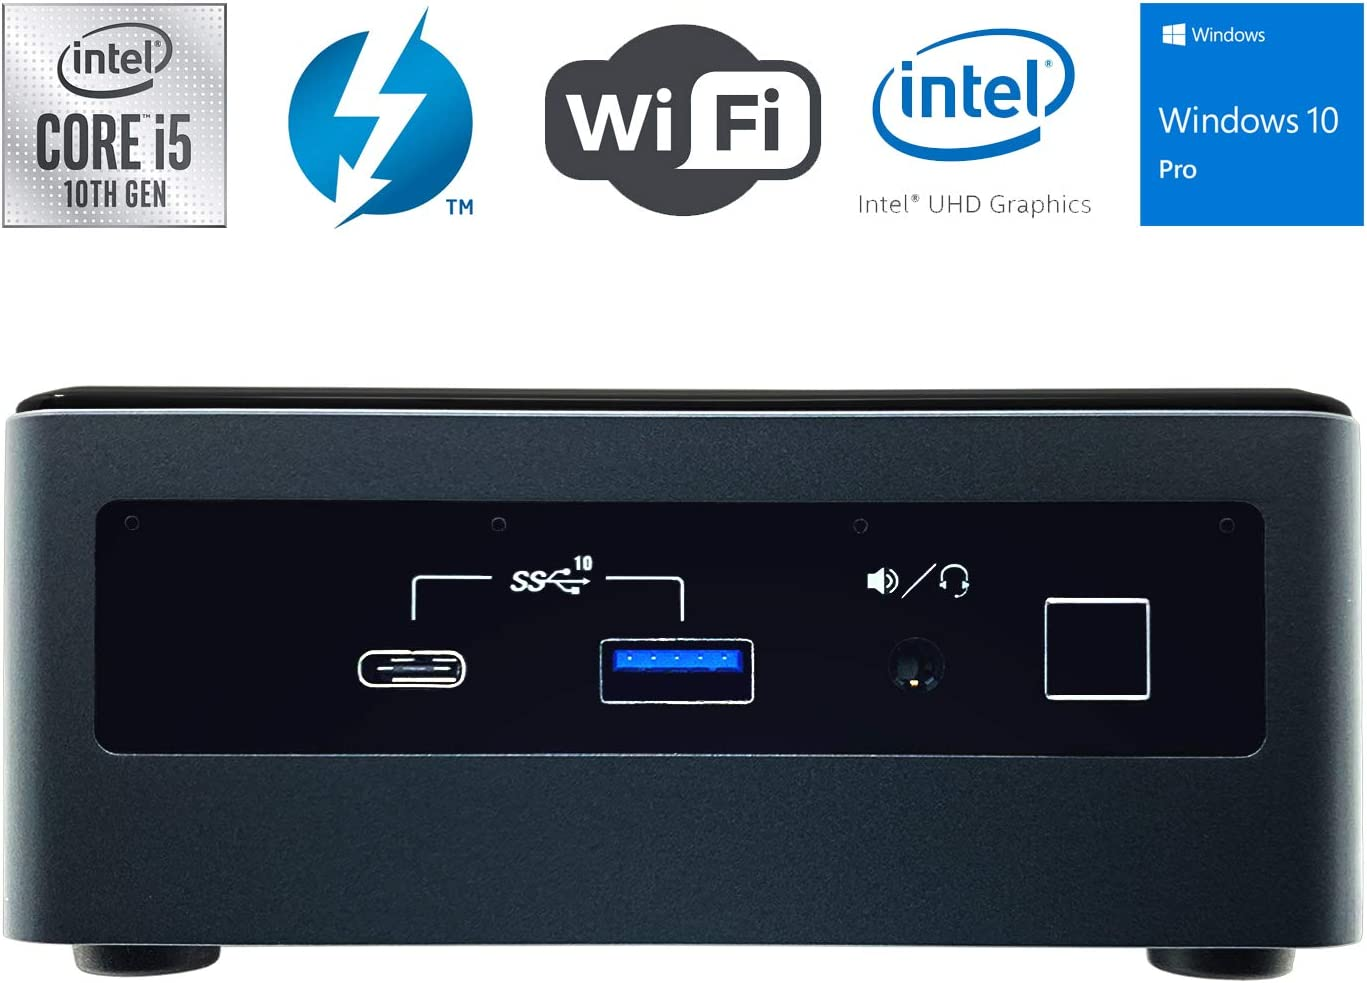 Intel NUC NUC10i5FNH Ultra Small Mini PC/HTPC - 10th Gen Intel Quad-Core i5-10210U up to 4.20 GHz CPU, 64GB DDR4 RAM, 4TB SSD, Wi-Fi + Bluetooth, Intel UHD Graphics, Windows 10 Pro (64-bit)